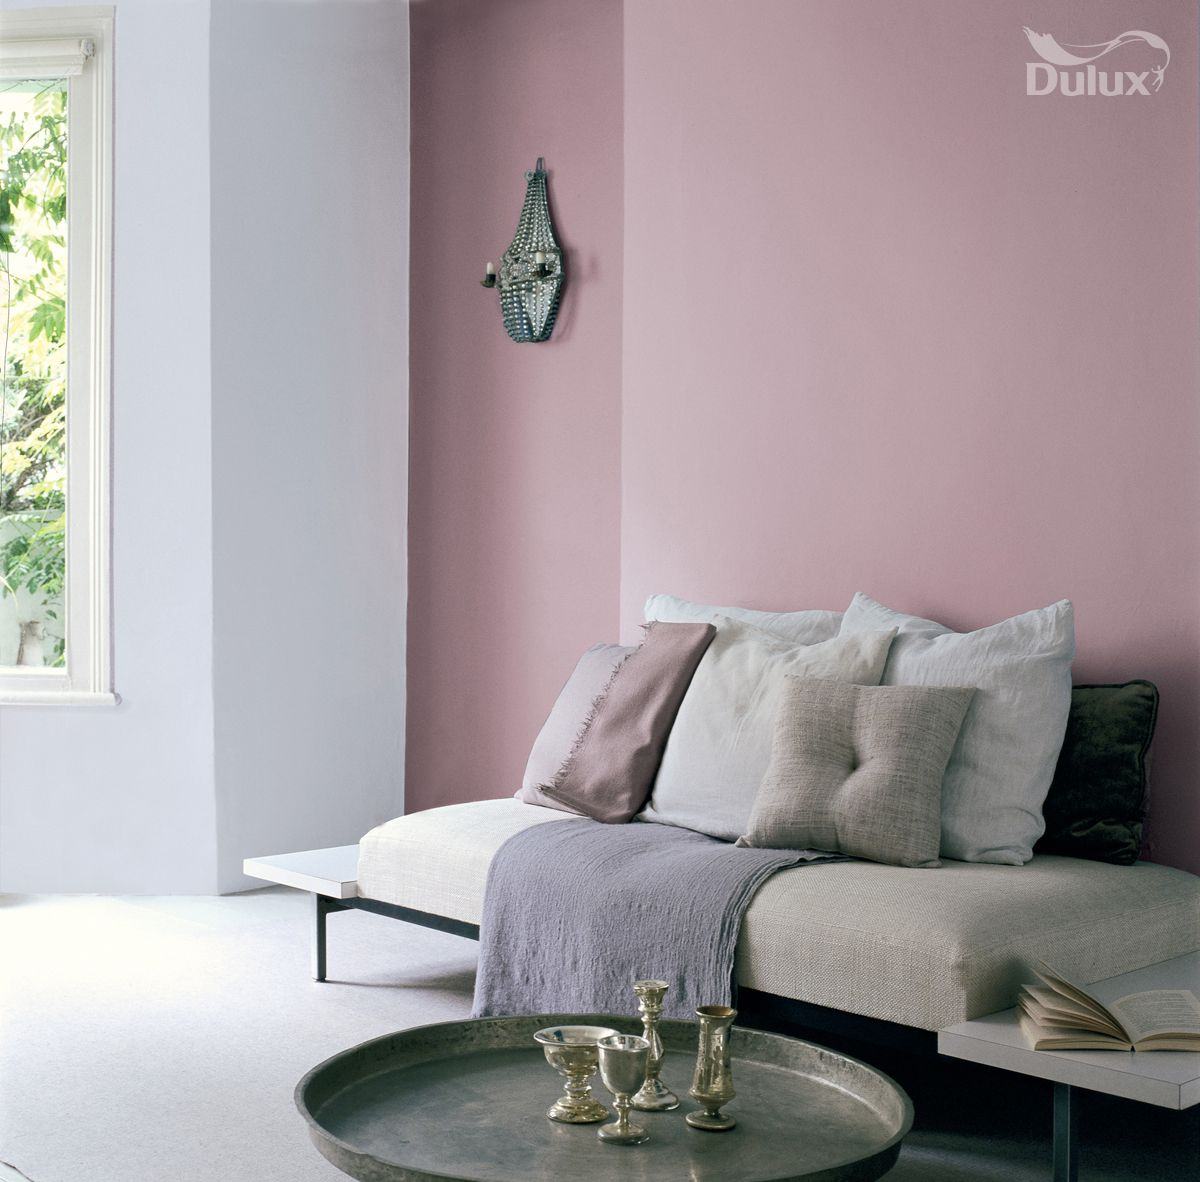 Violet and blue is an enchanting combination of delicate for Dulux living room designs